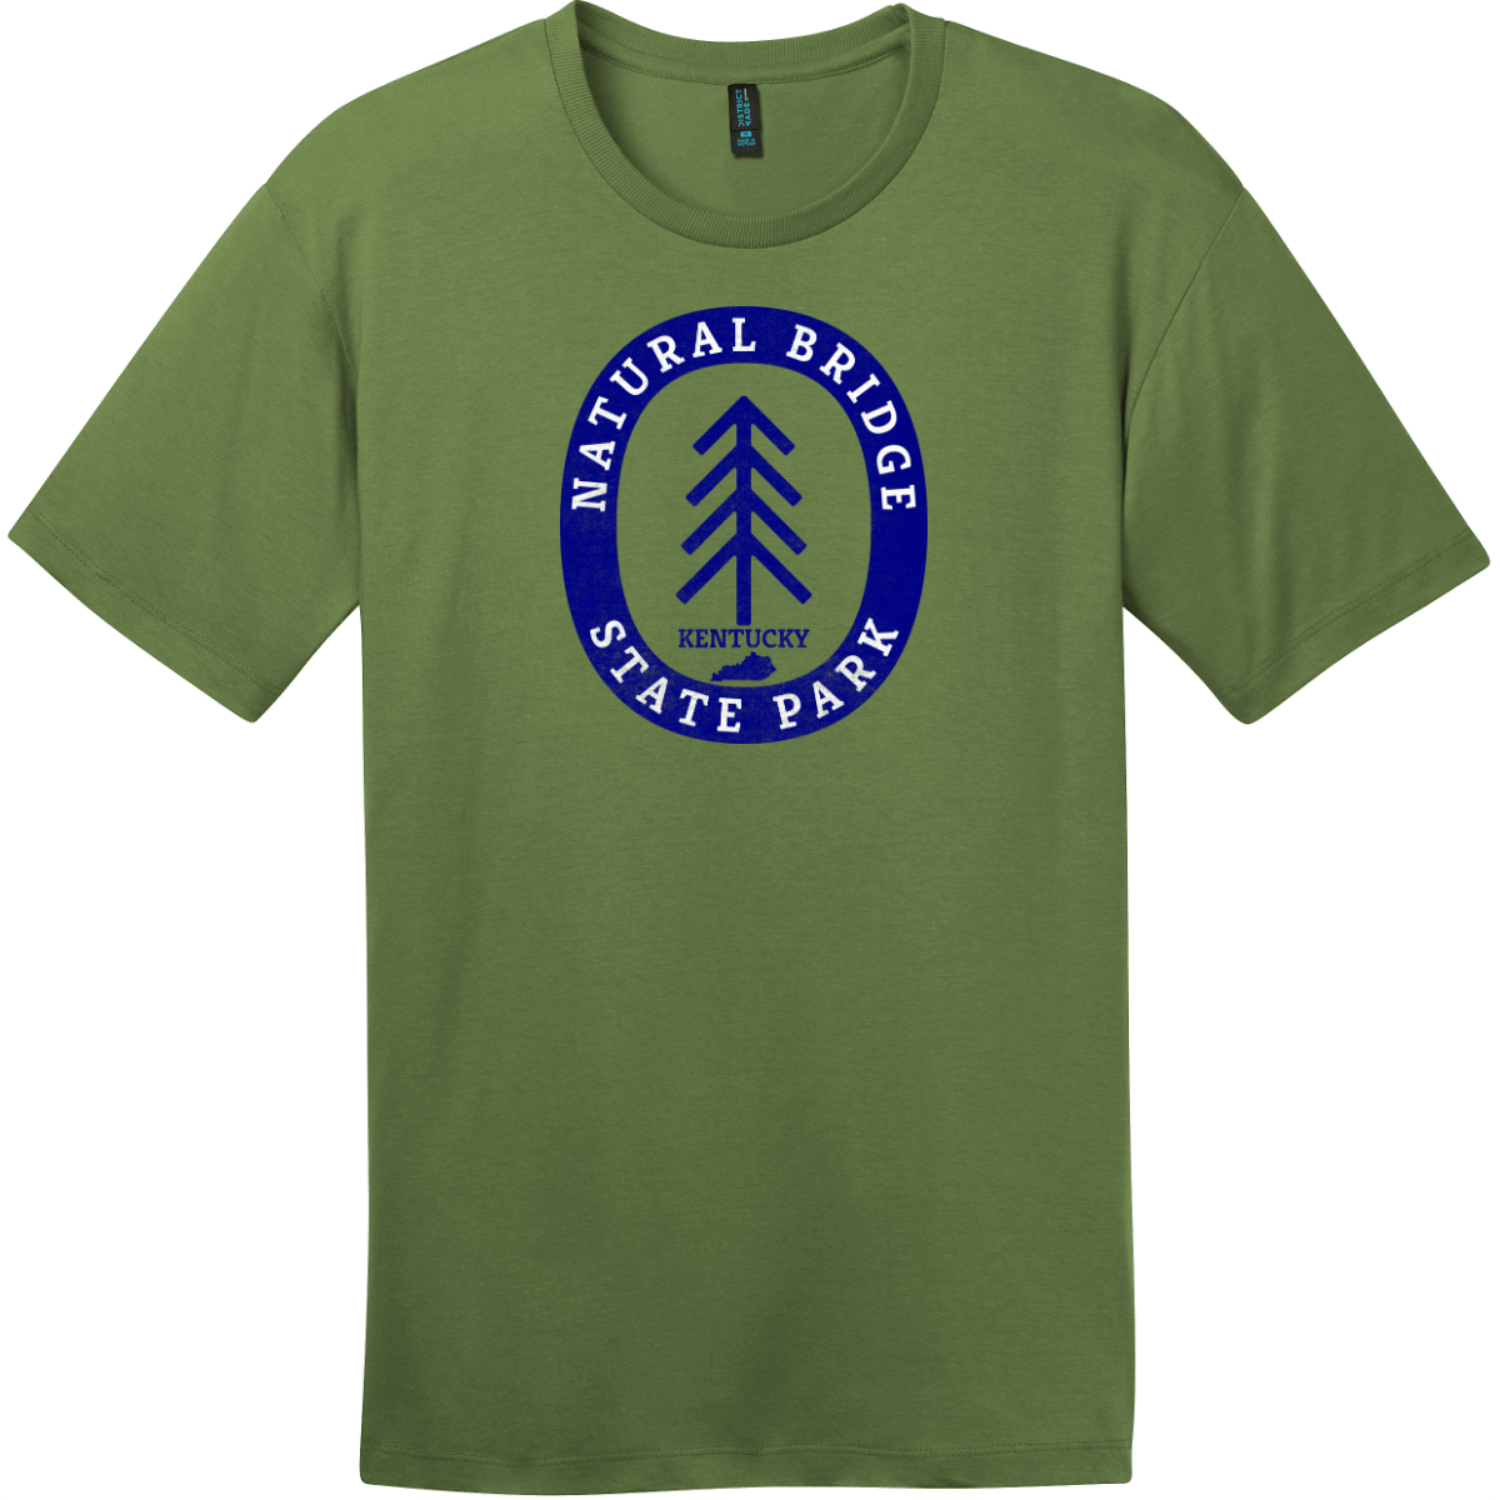 Natural Bridge State Park T-Shirt Fresh Fatigue District Perfect Weight Tee DT104